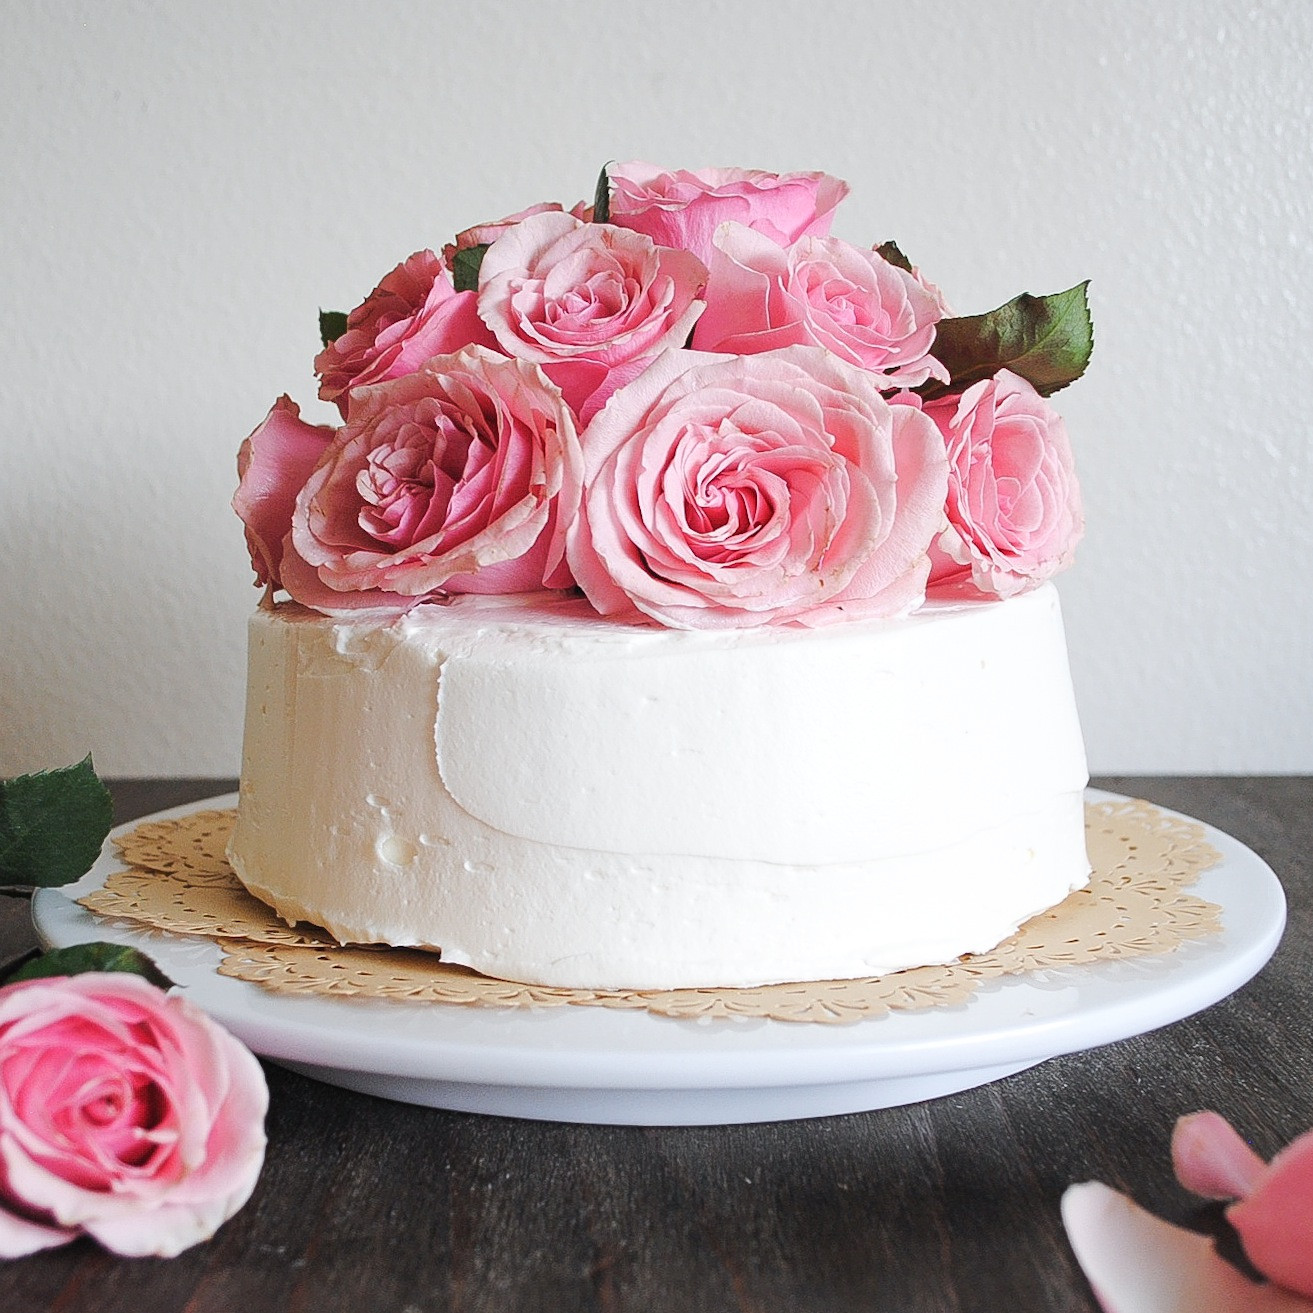 Best ideas about Roses Birthday Cake . Save or Pin Tayberry Chocolate Cake with Fresh Cut Roses Now.